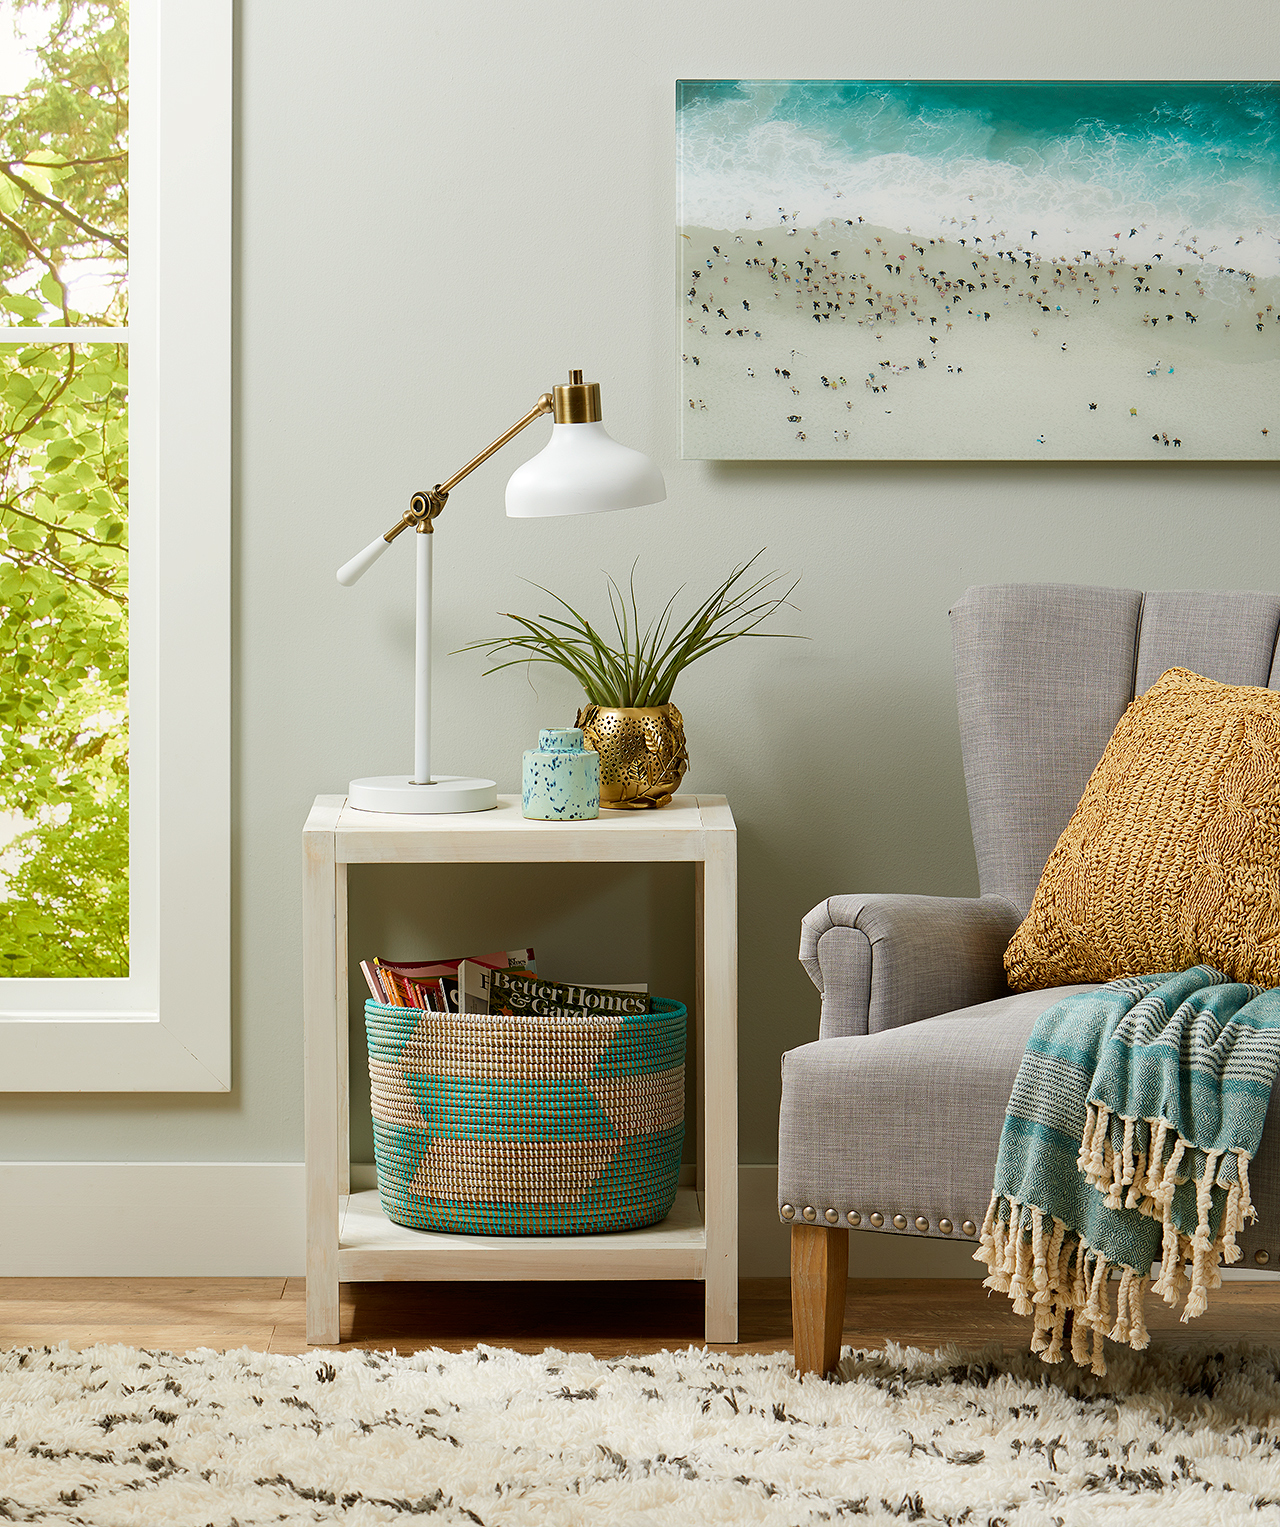 how build farmhouse end table better homes gardens style side decor diy with chair and artwork old ethan allen bedroom furniture pulaski inexpensive patio tables modern pedestal